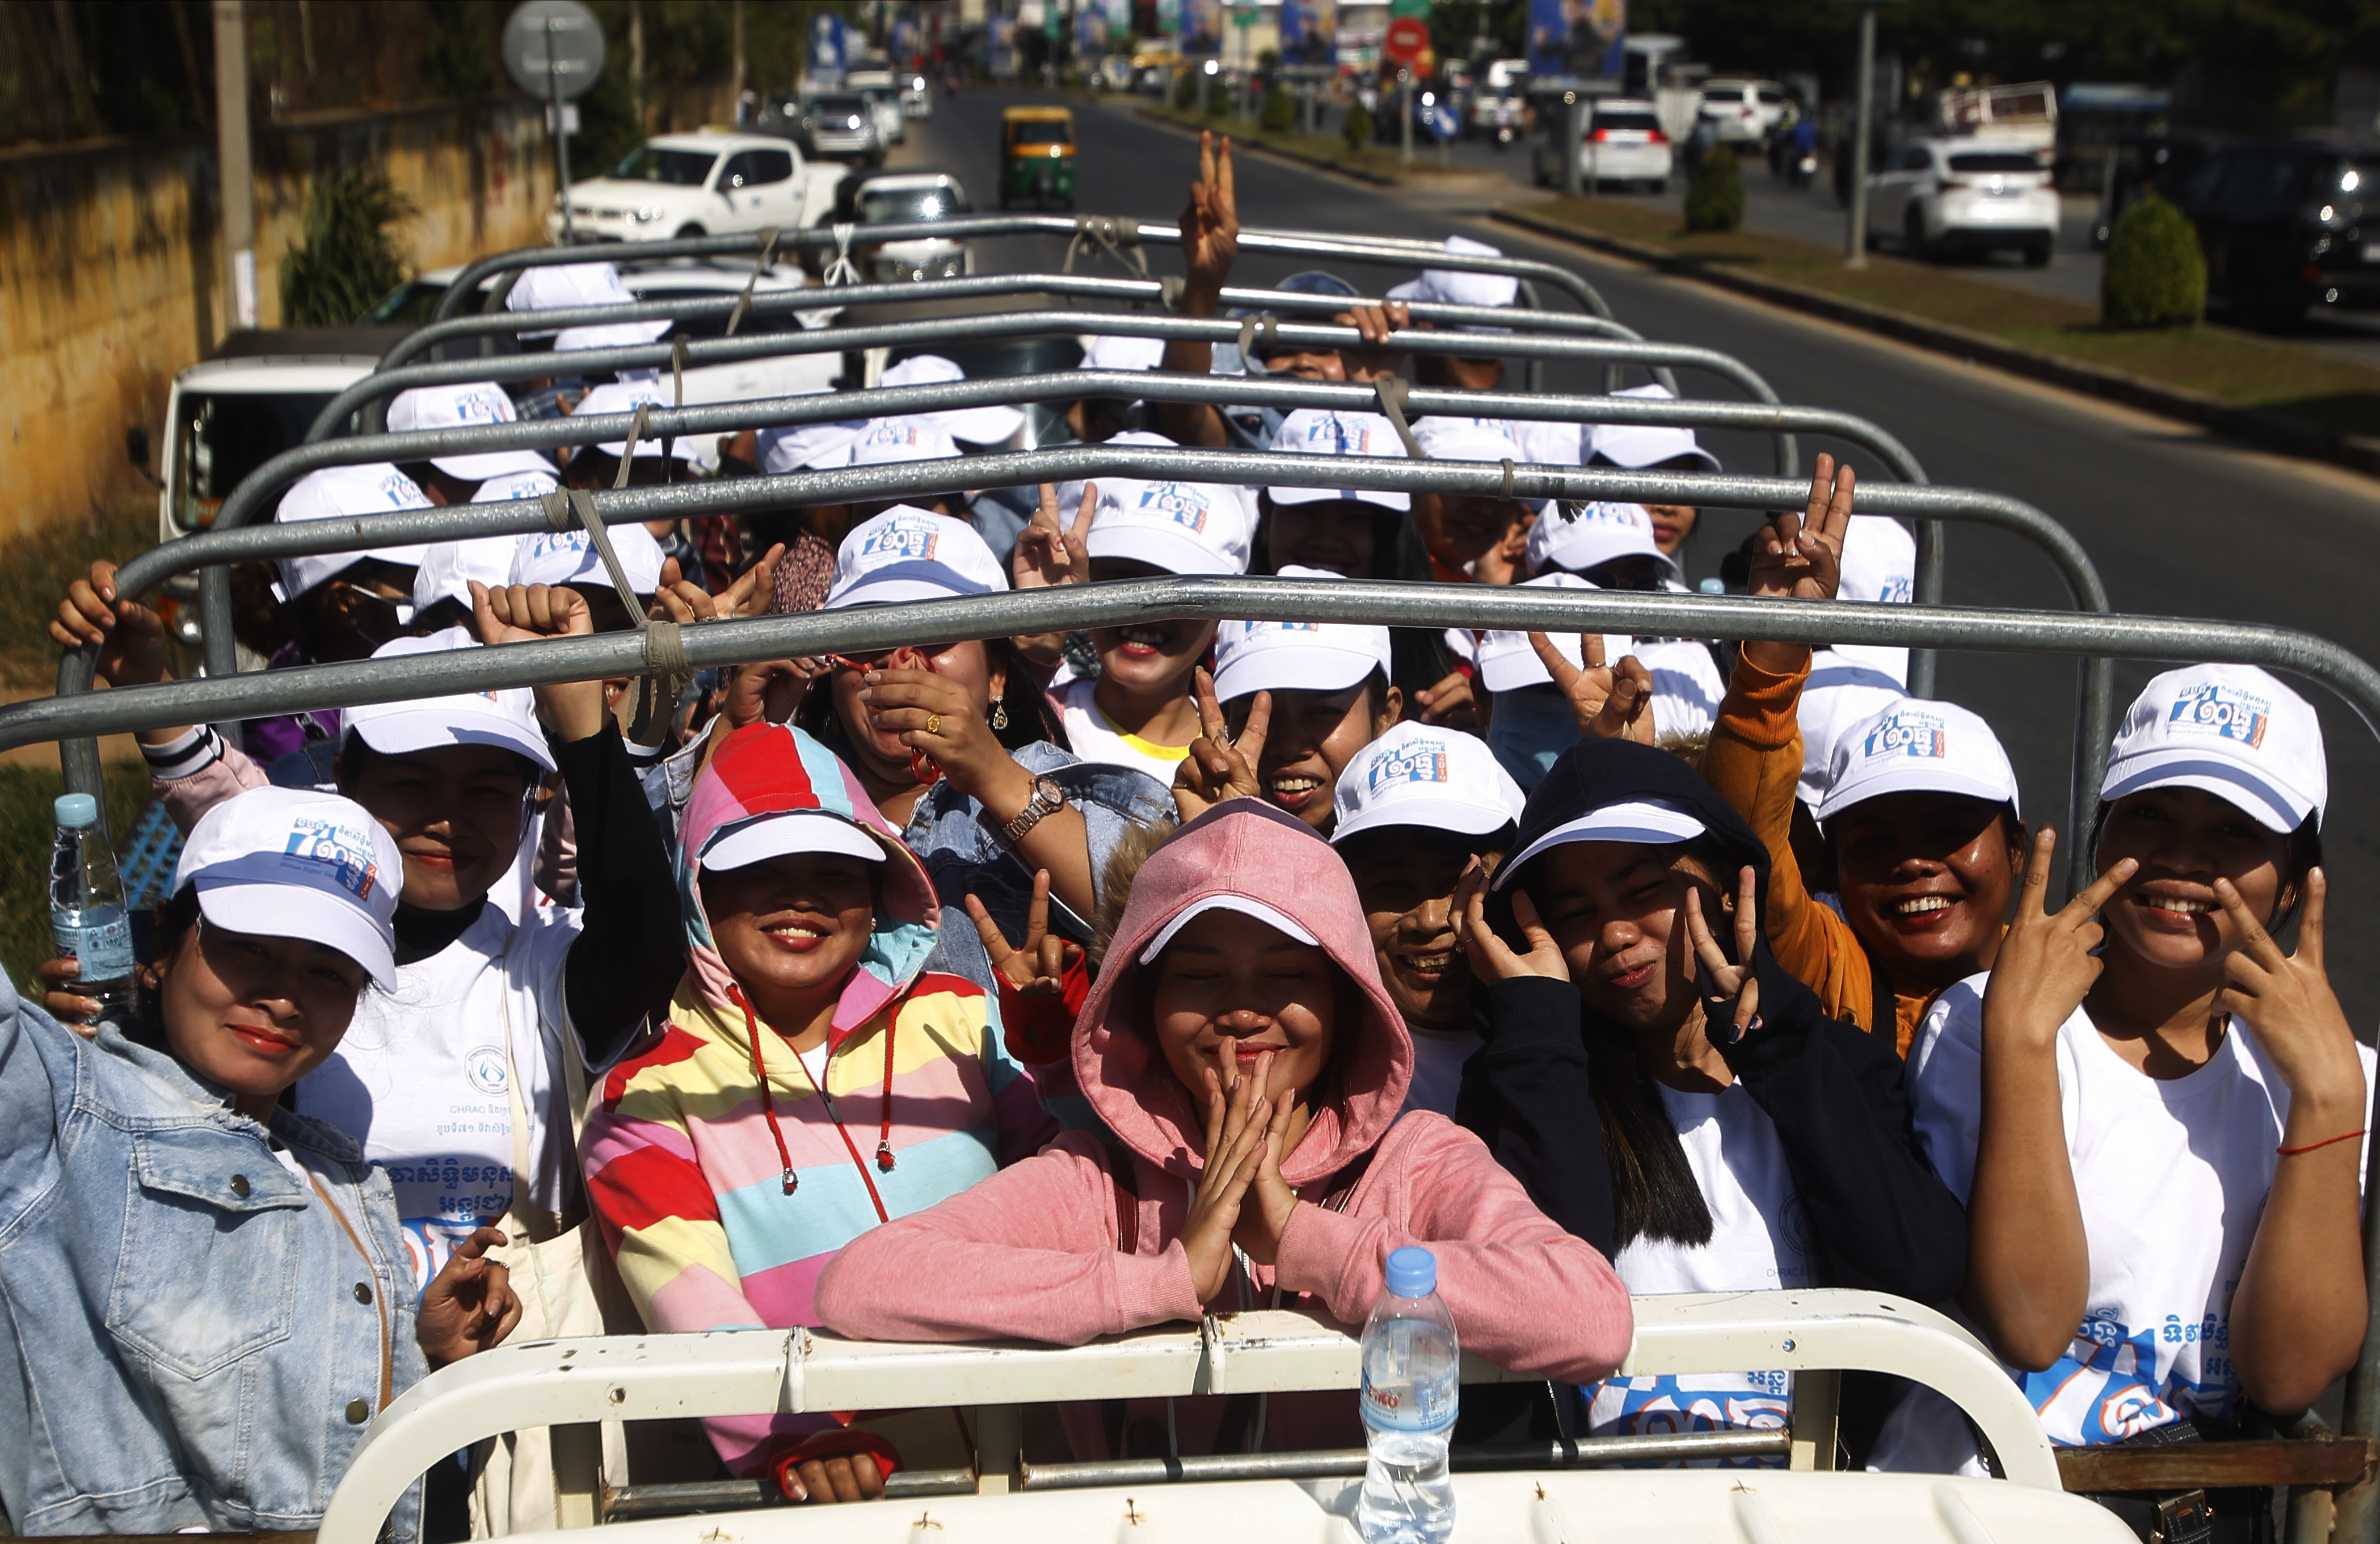 Cambodian factory workers stand on a truck after they participate in a celebration to mark the Human Rights Day at Democracy Square in Phnom Penh, Cambodia, Tuesday, Dec. 10, 2019. The United Nation's adopted Dec. 10 as the international human rights day in 1948 and has been observed annually ever since. (AP Photo/Heng Sinith)